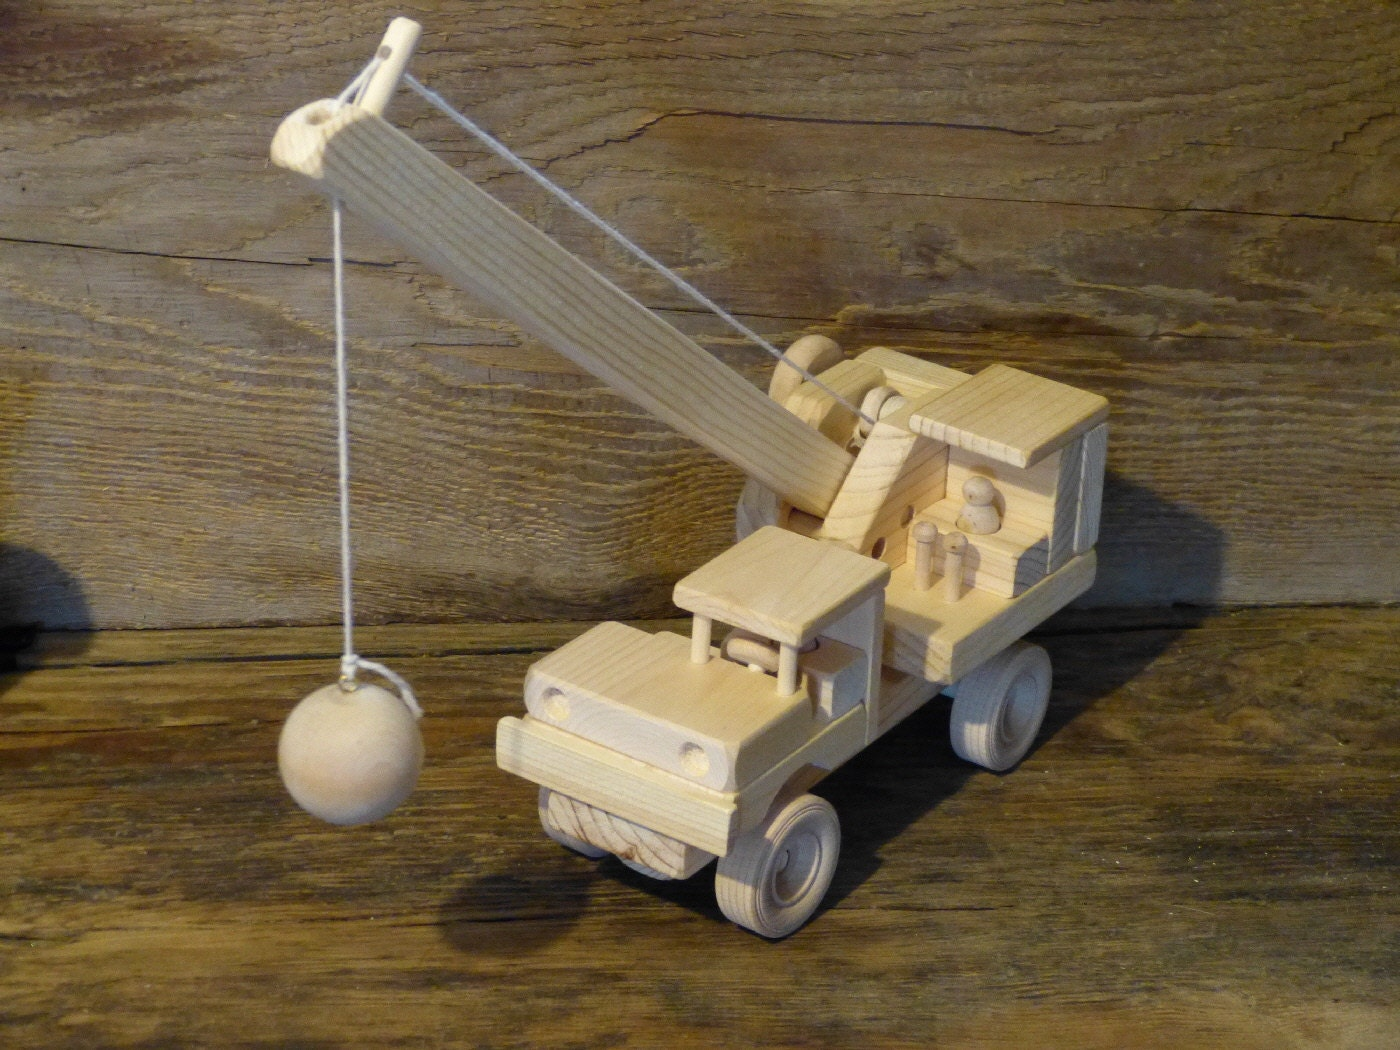 Wooden Construction Toys : Wrecking ball construction handmade wood toy crane wooden toys